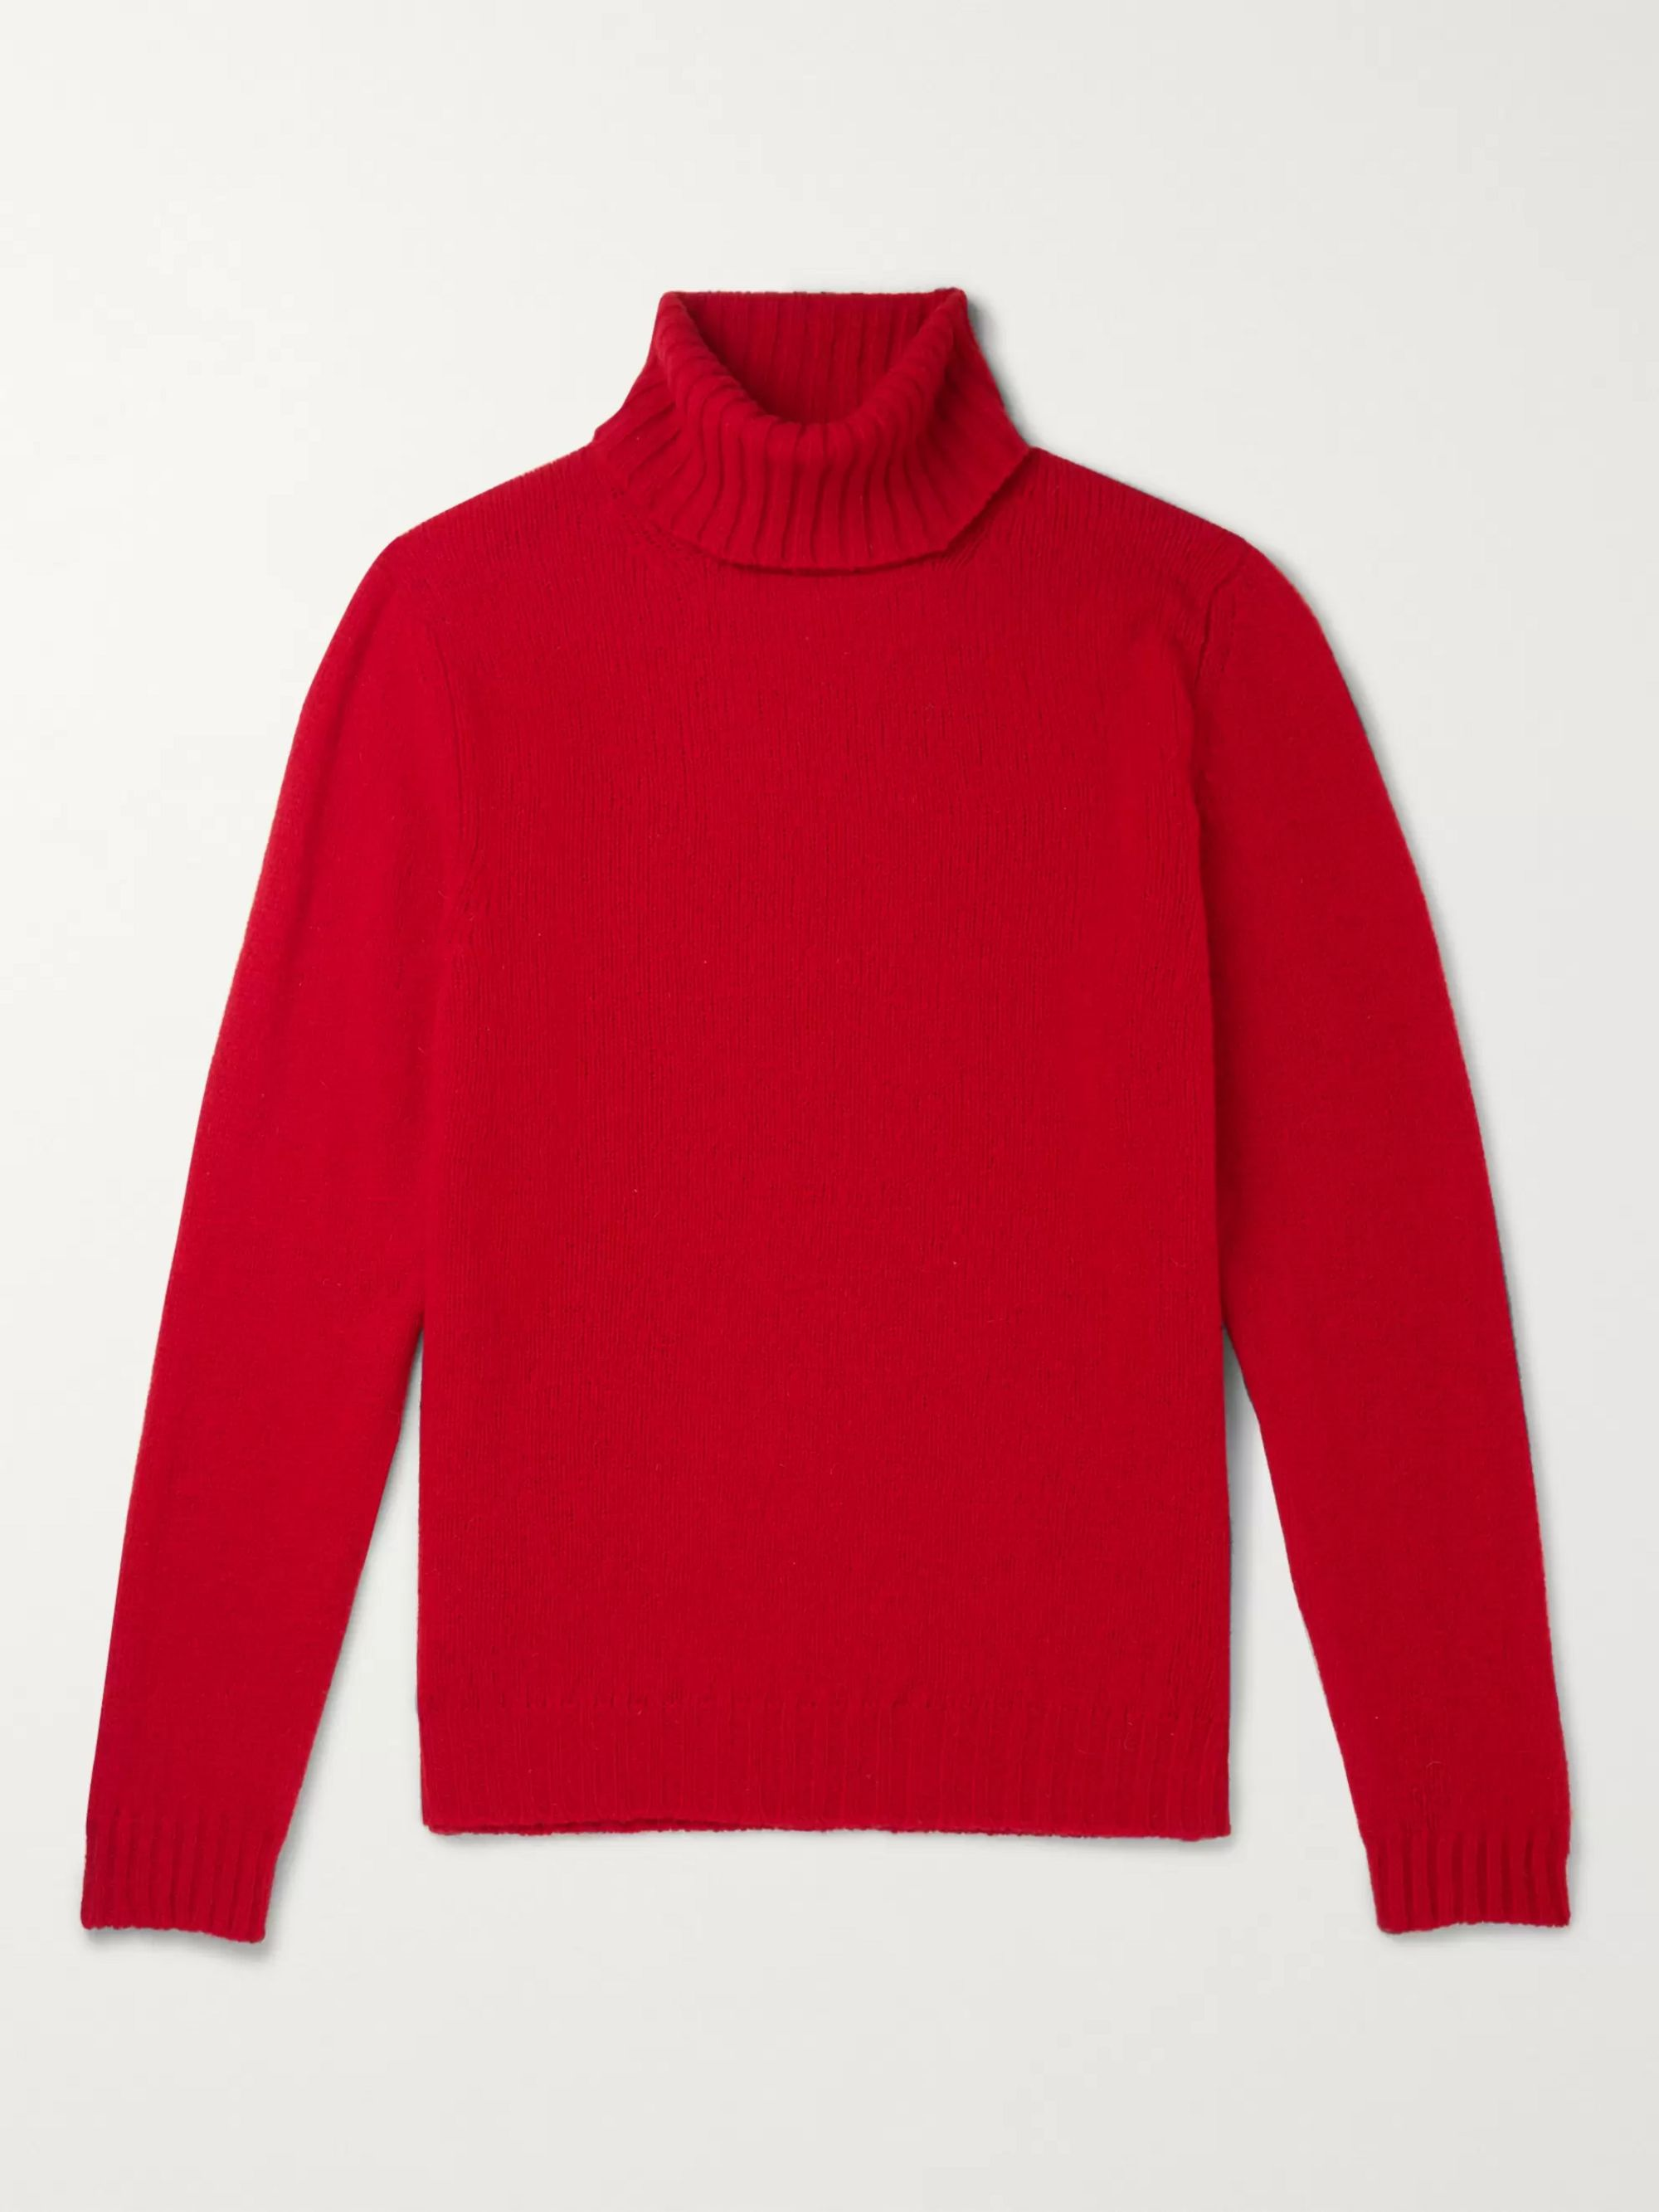 MAN 1924 Shetland Wool Rollneck Sweater